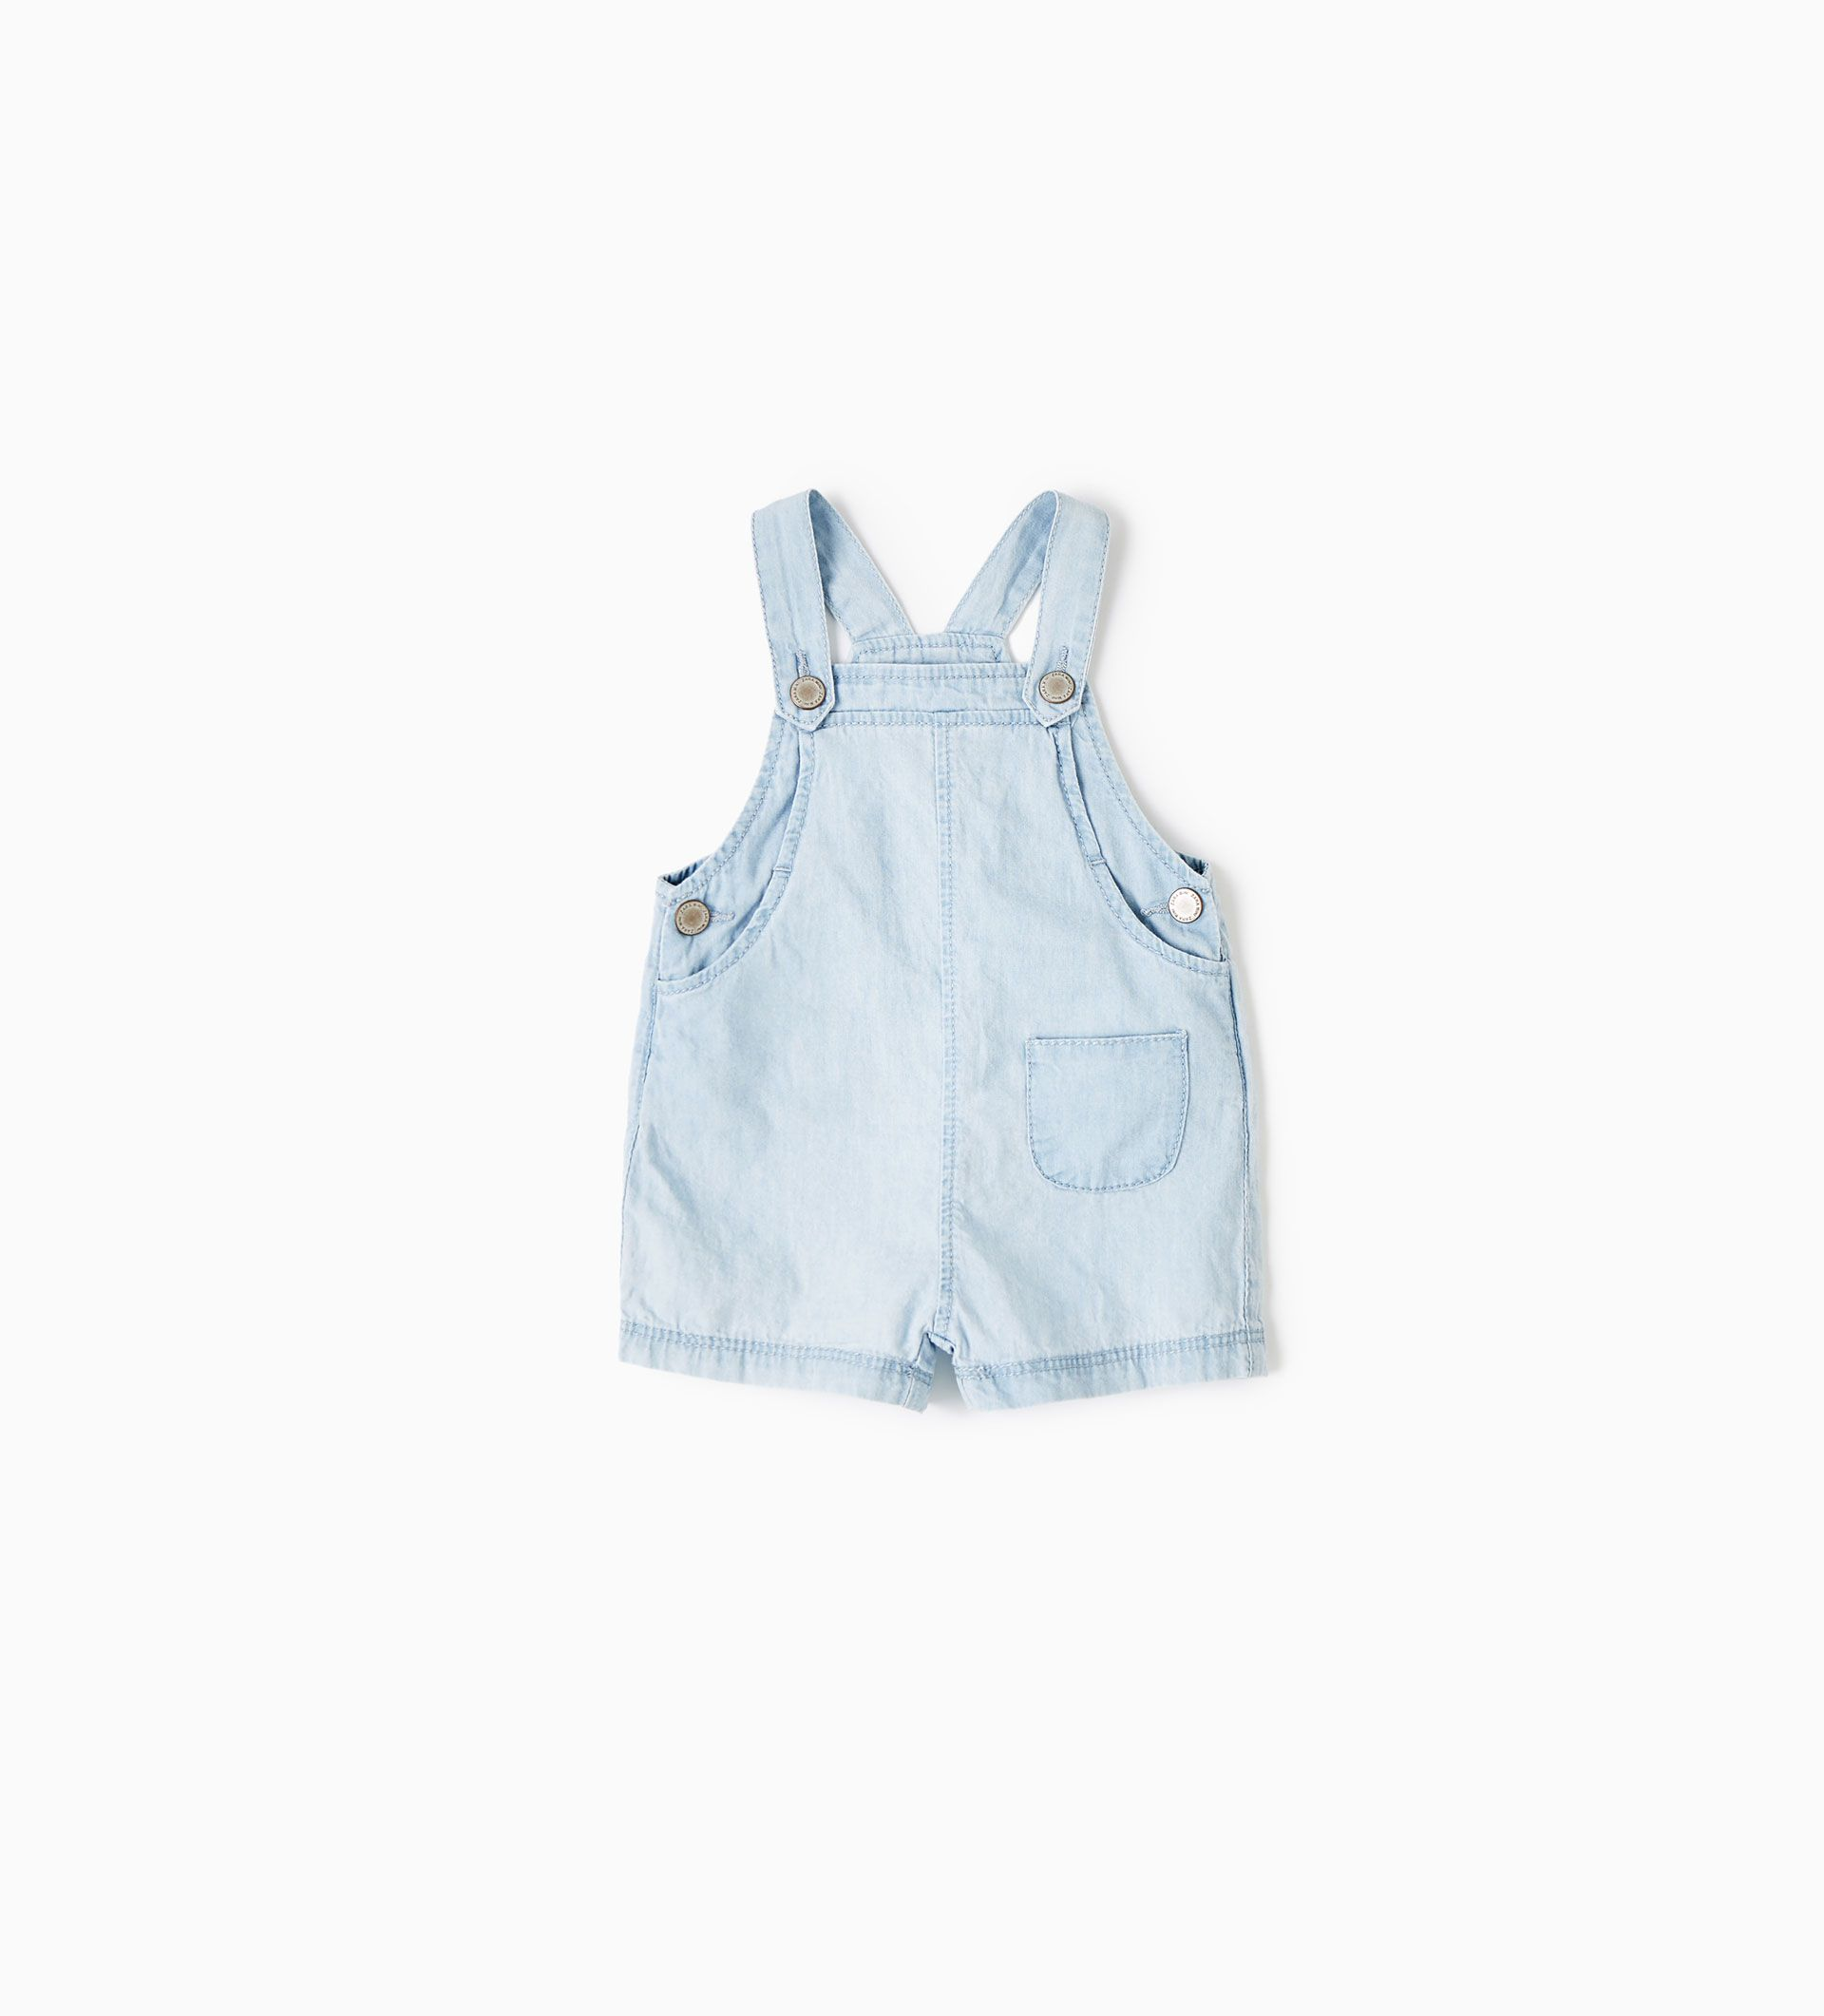 RELAXED DENIM DUNGAREES for baby from Zara | Baby Gifts | Pinterest ...